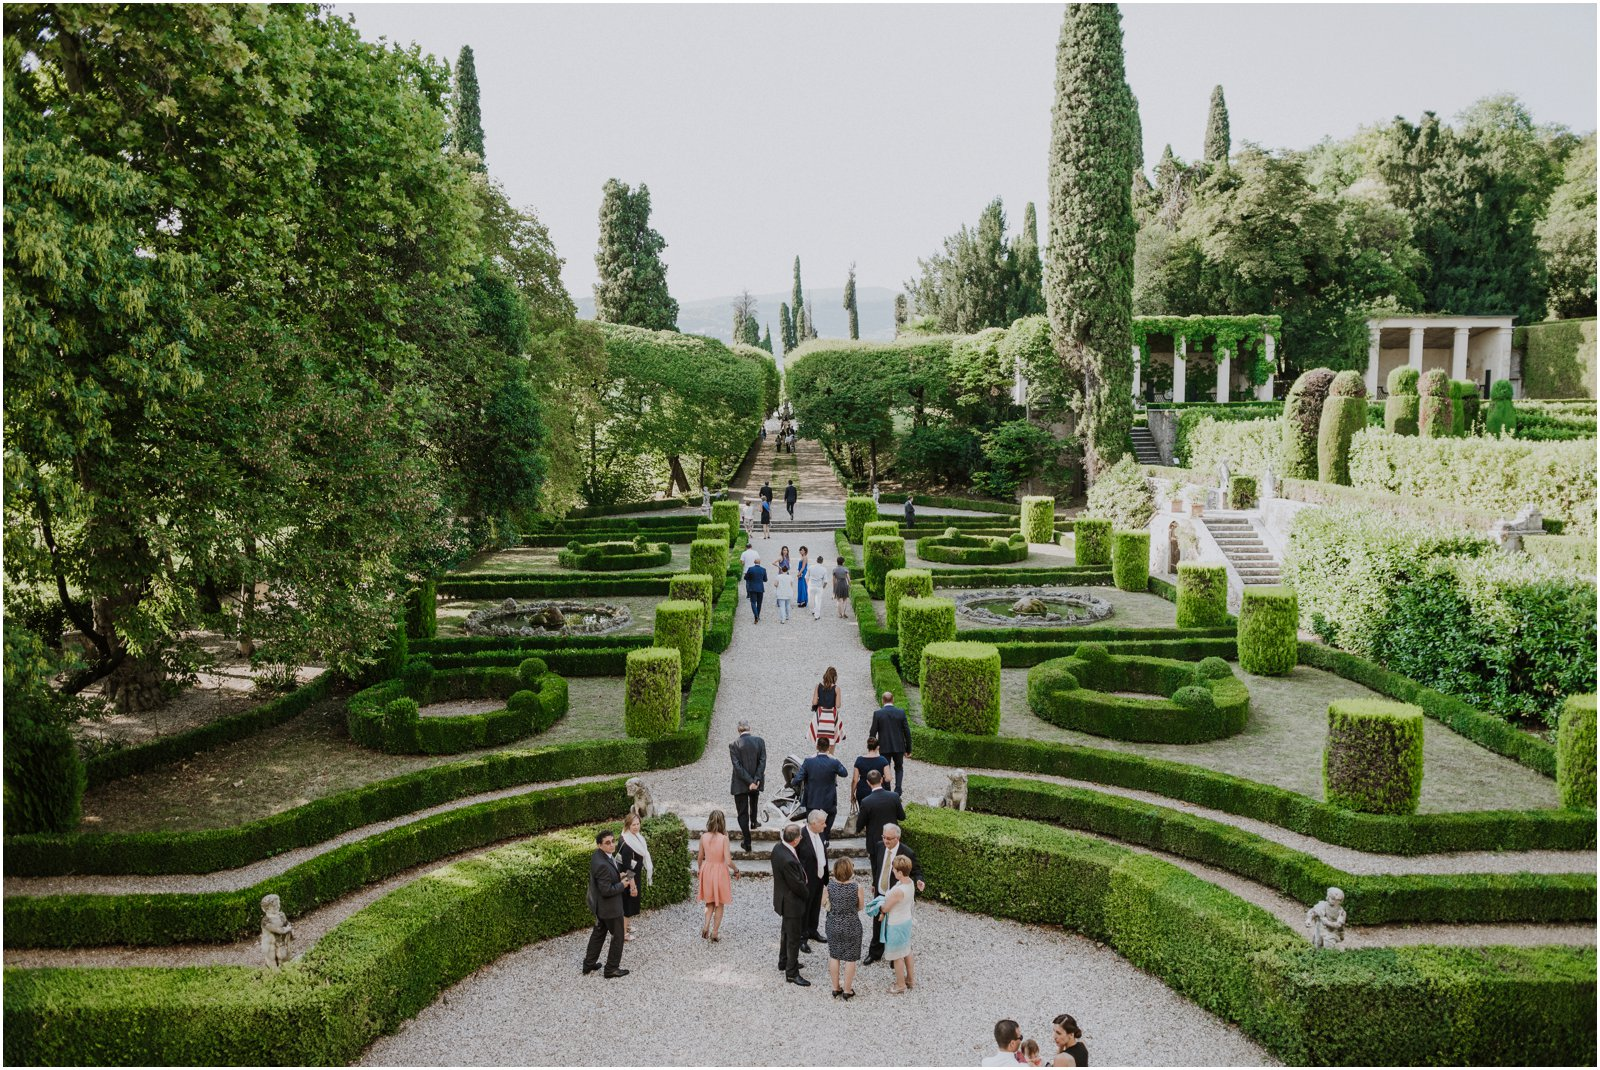 veronasposi foto e video matrimonio verona_0575